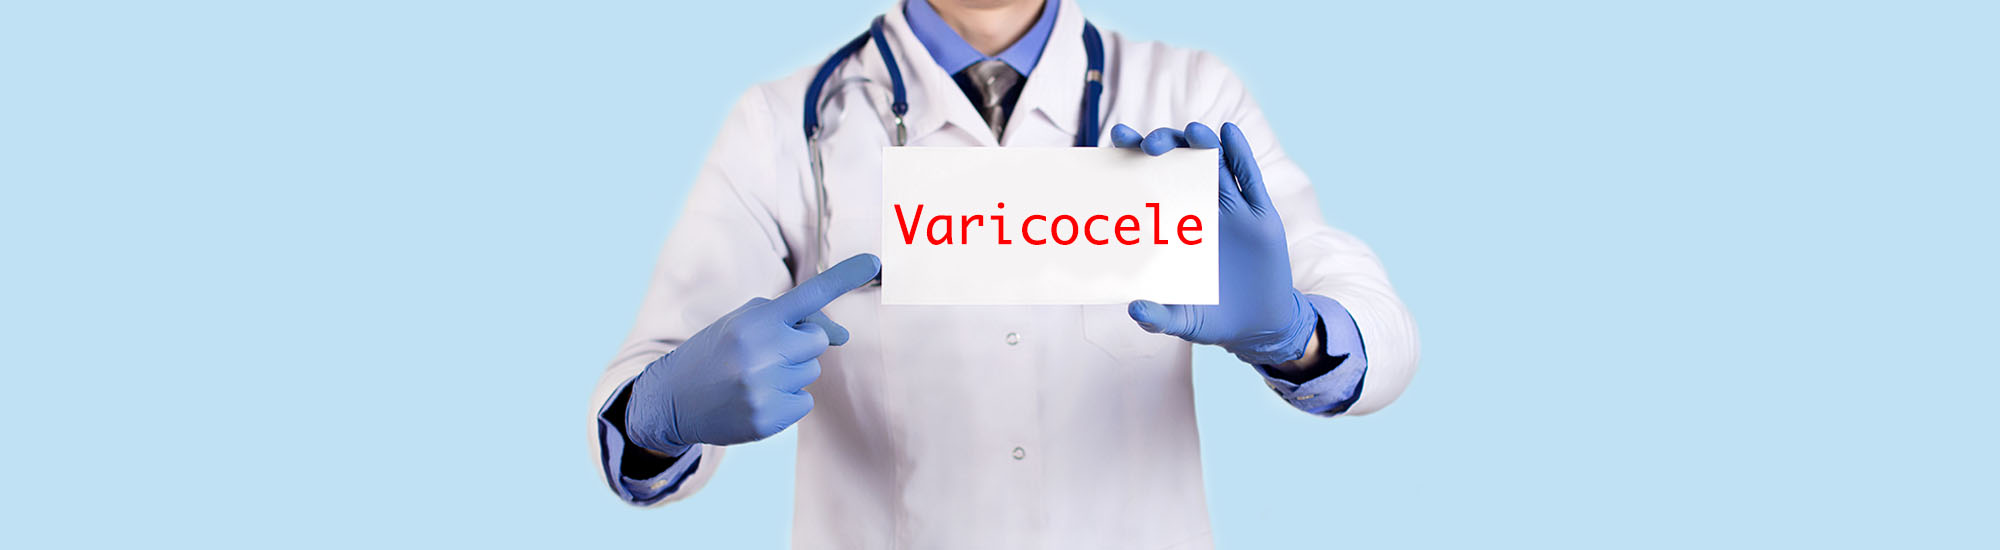 Ayurvedic treatment for Varicocele References